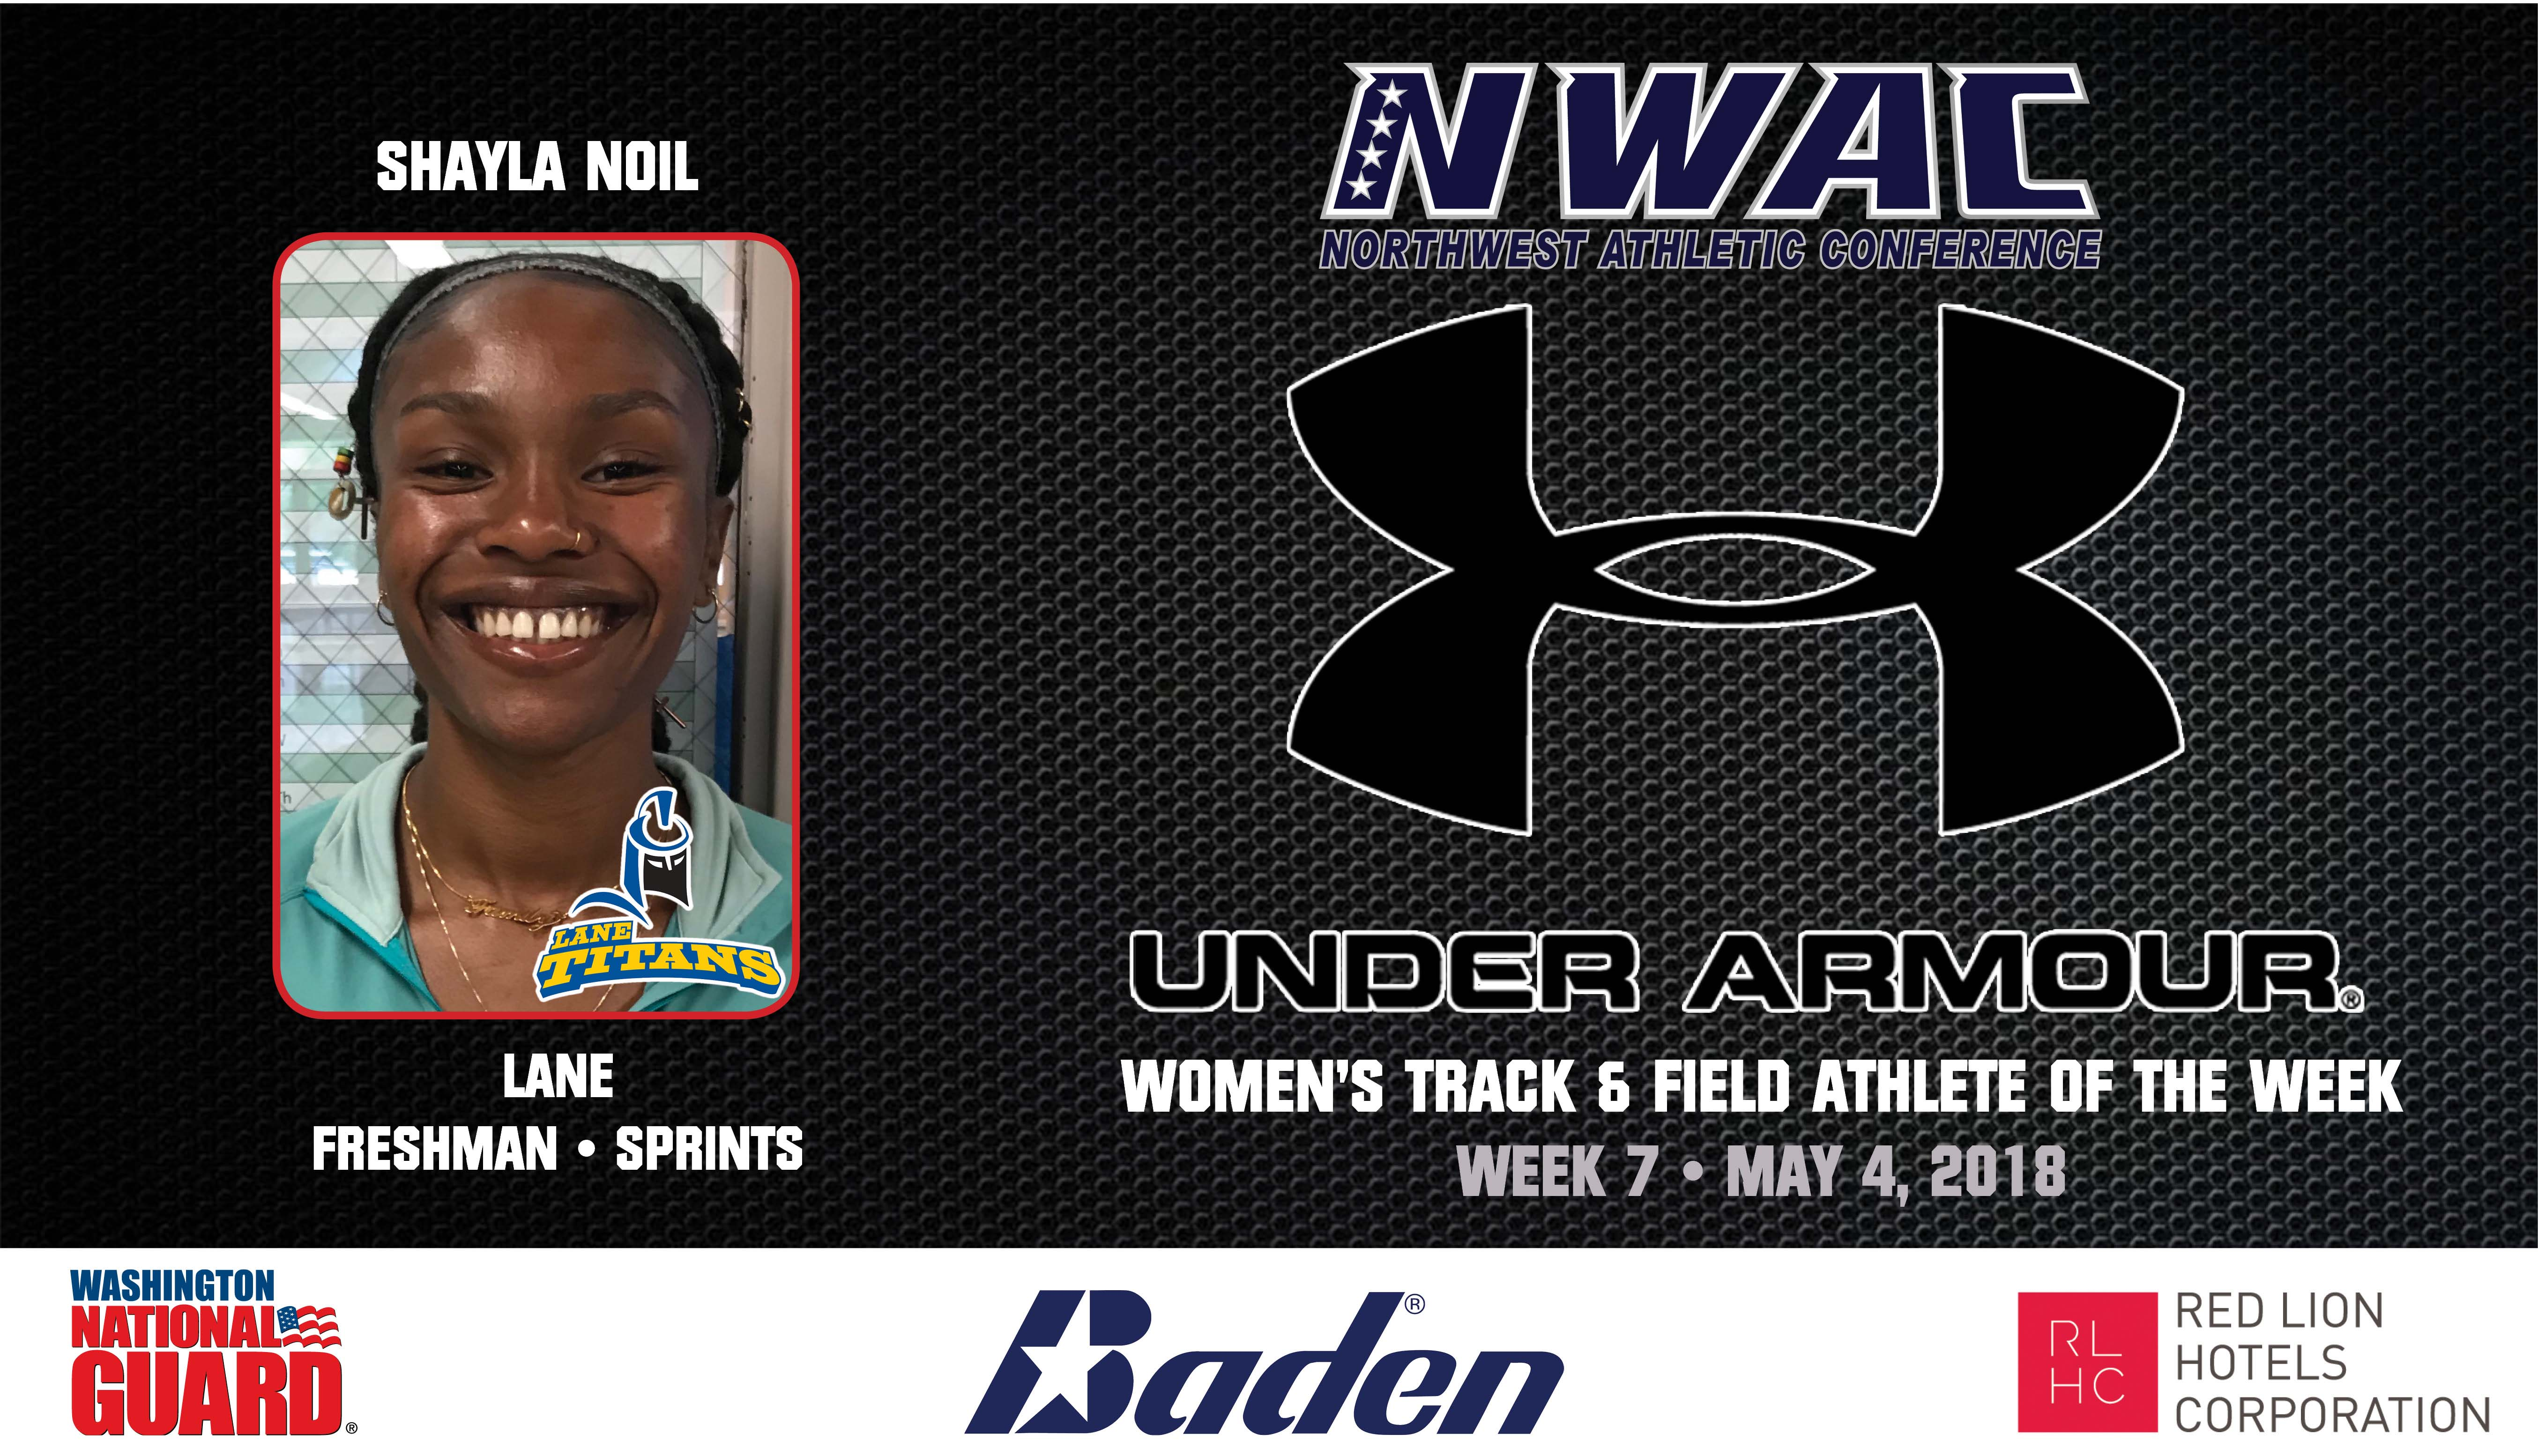 Shayla Noil Under Armour image